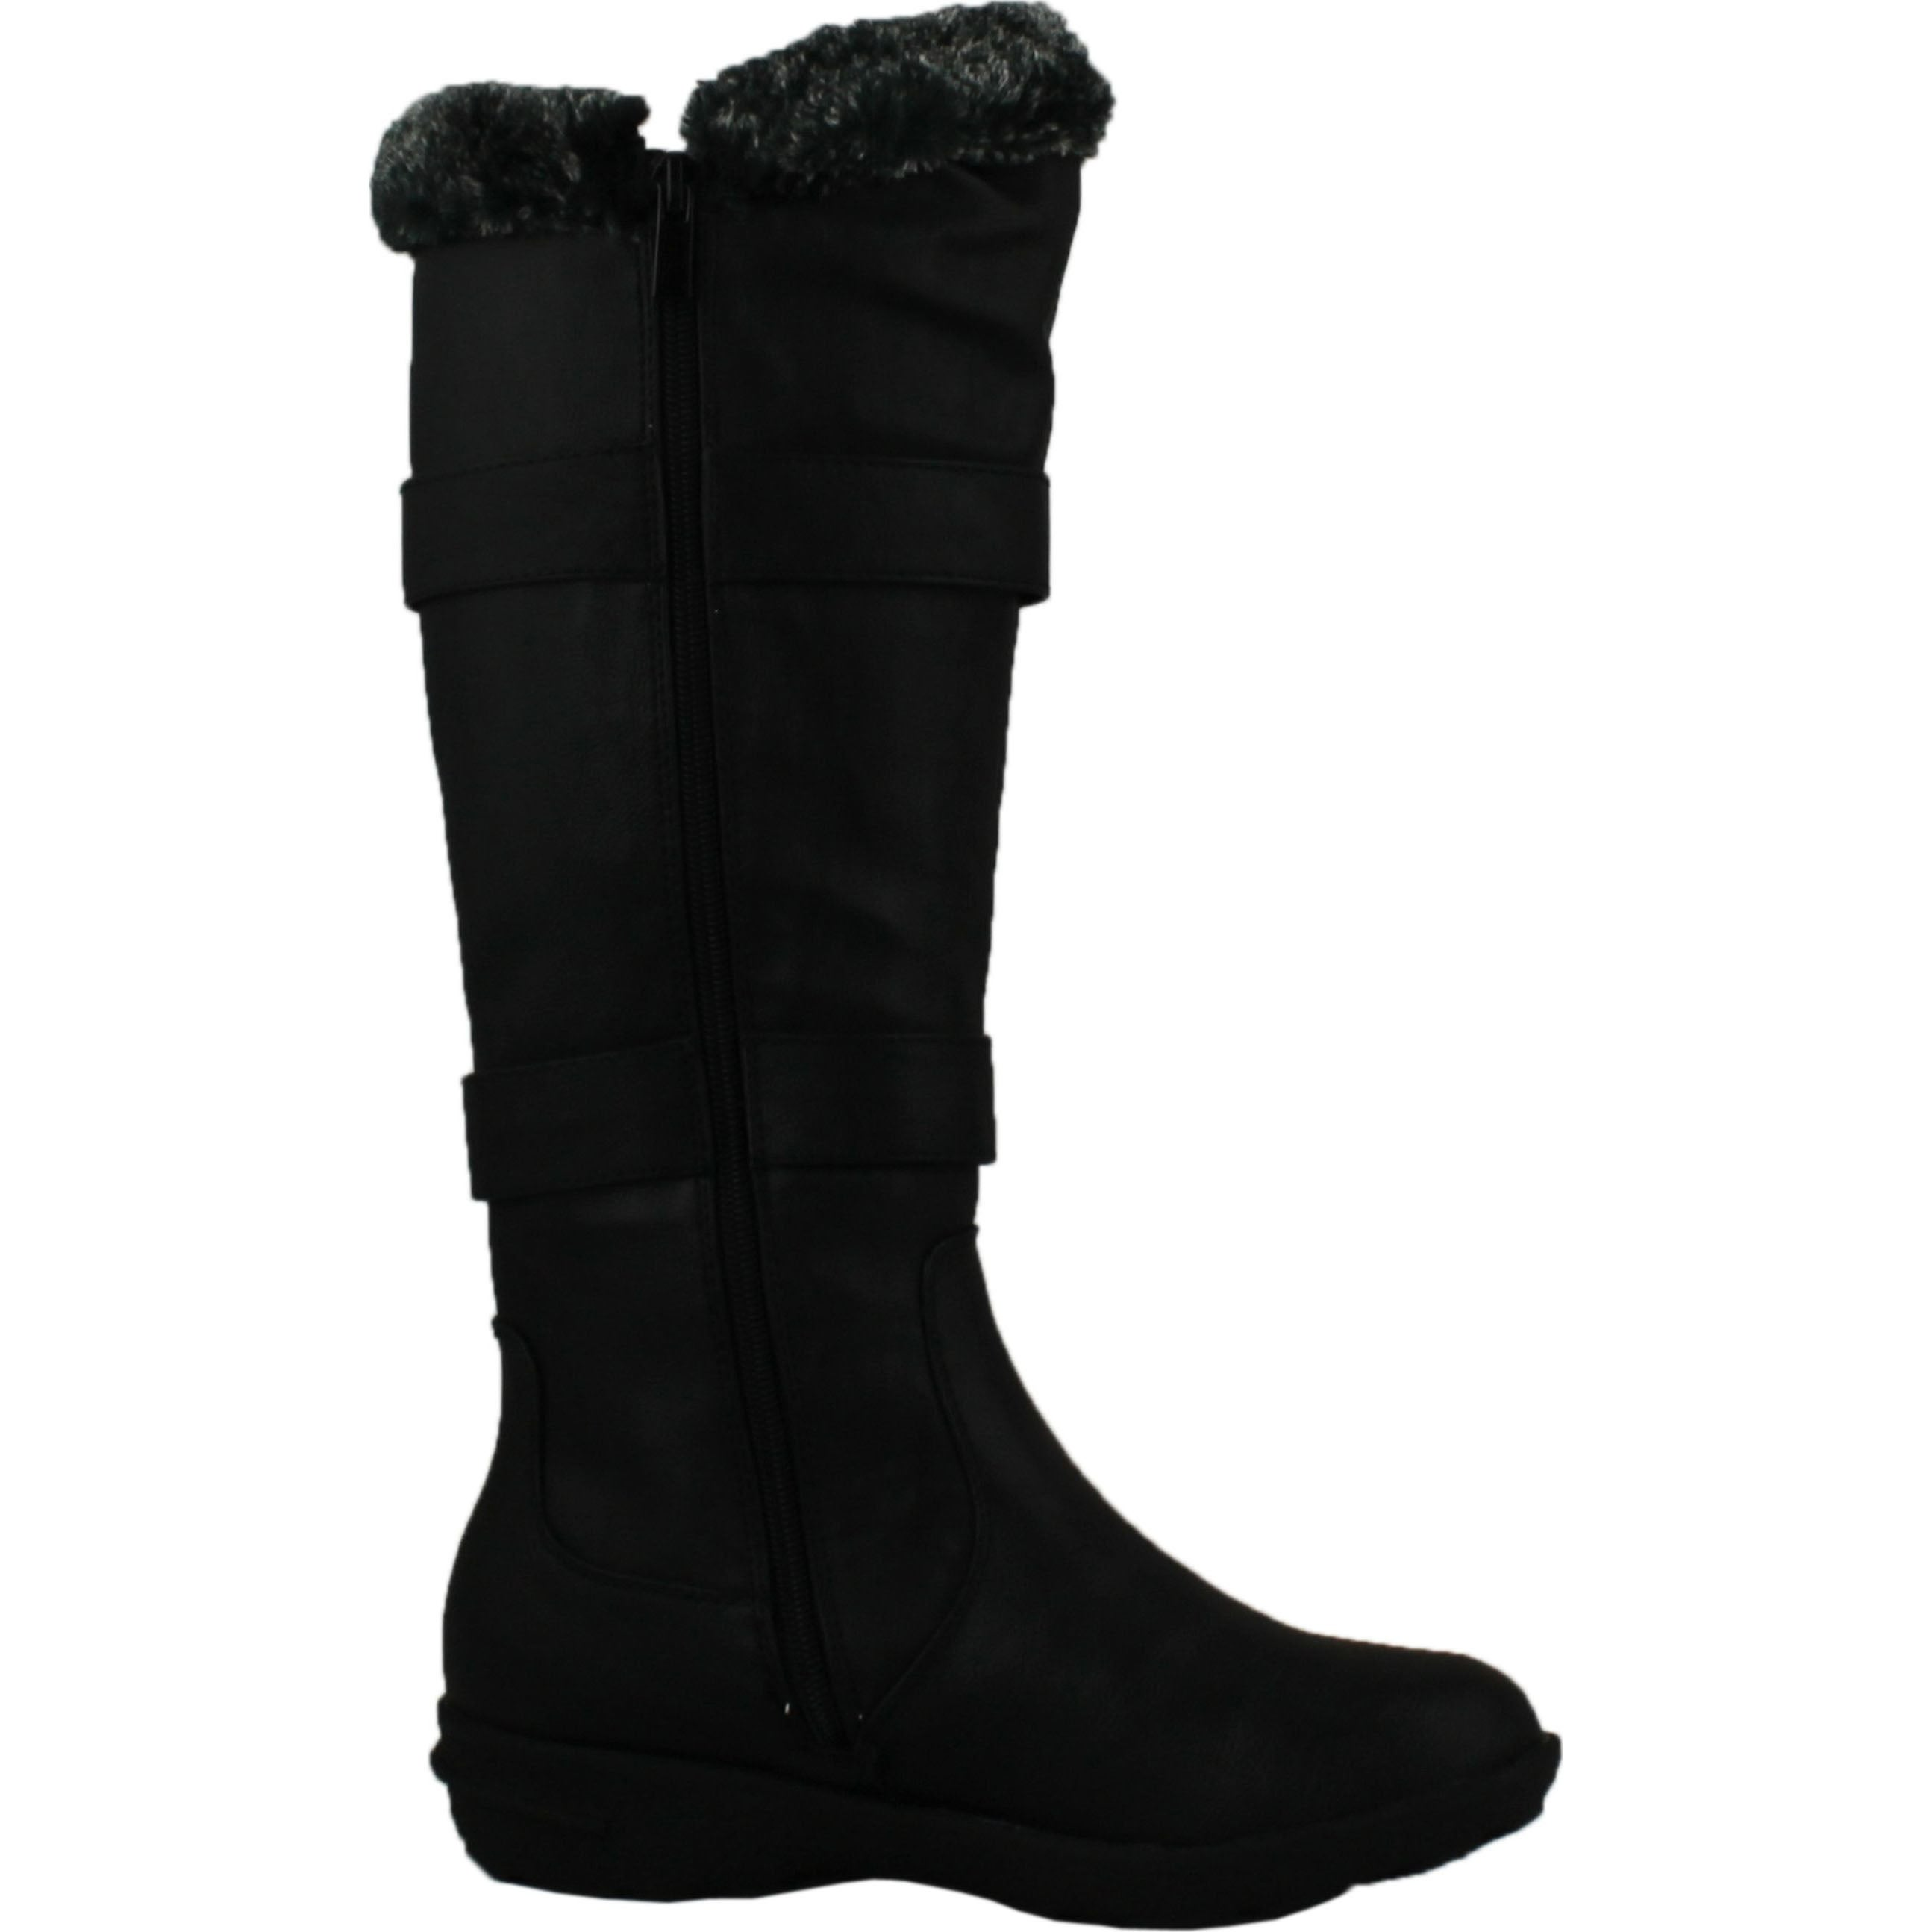 60df79fa45a Shop Forever Aura-43 Womens Double Straps Knee High Boots Winter Boots -  Black - Free Shipping On Orders Over  45 - Overstock - 14312807